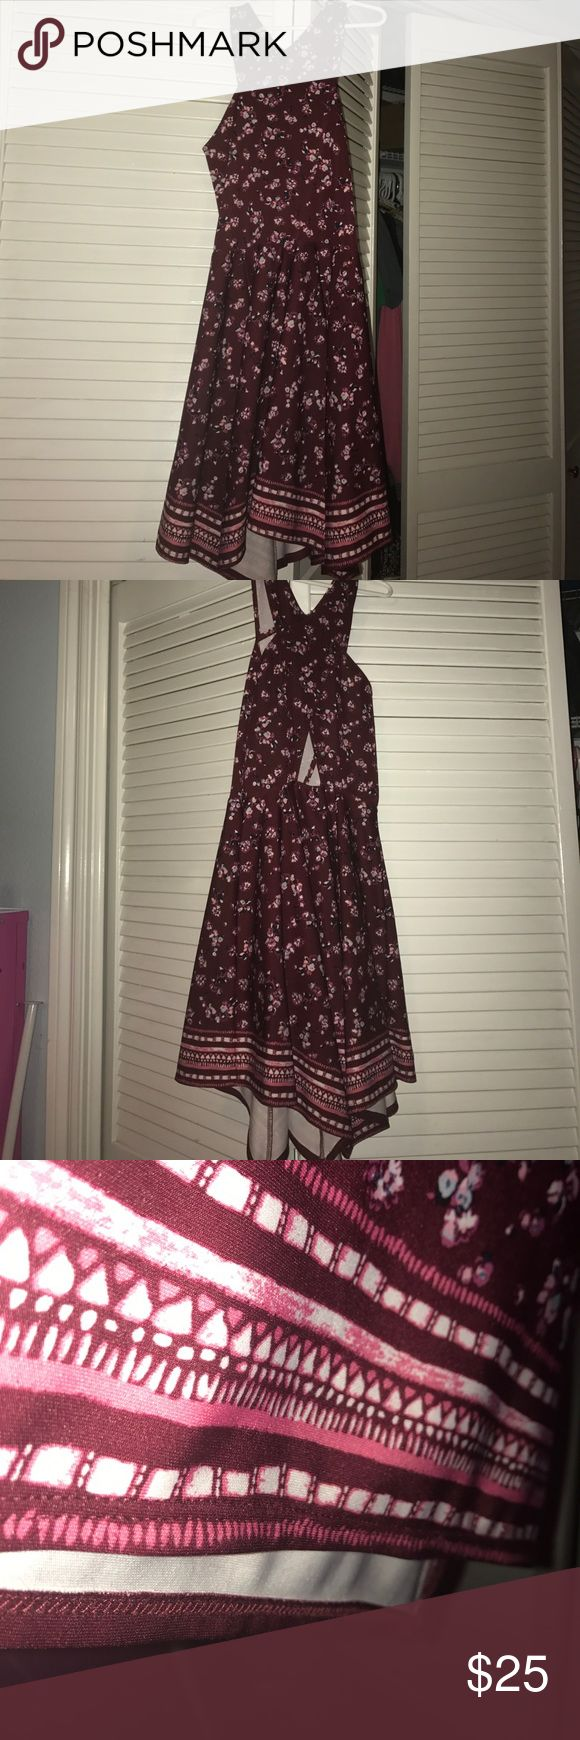 Abercrombie dress M/12 Maroonish/red background with flowers and an Aztec design on the trim. Used but in great condition. abercrombie kids Dresses Mini